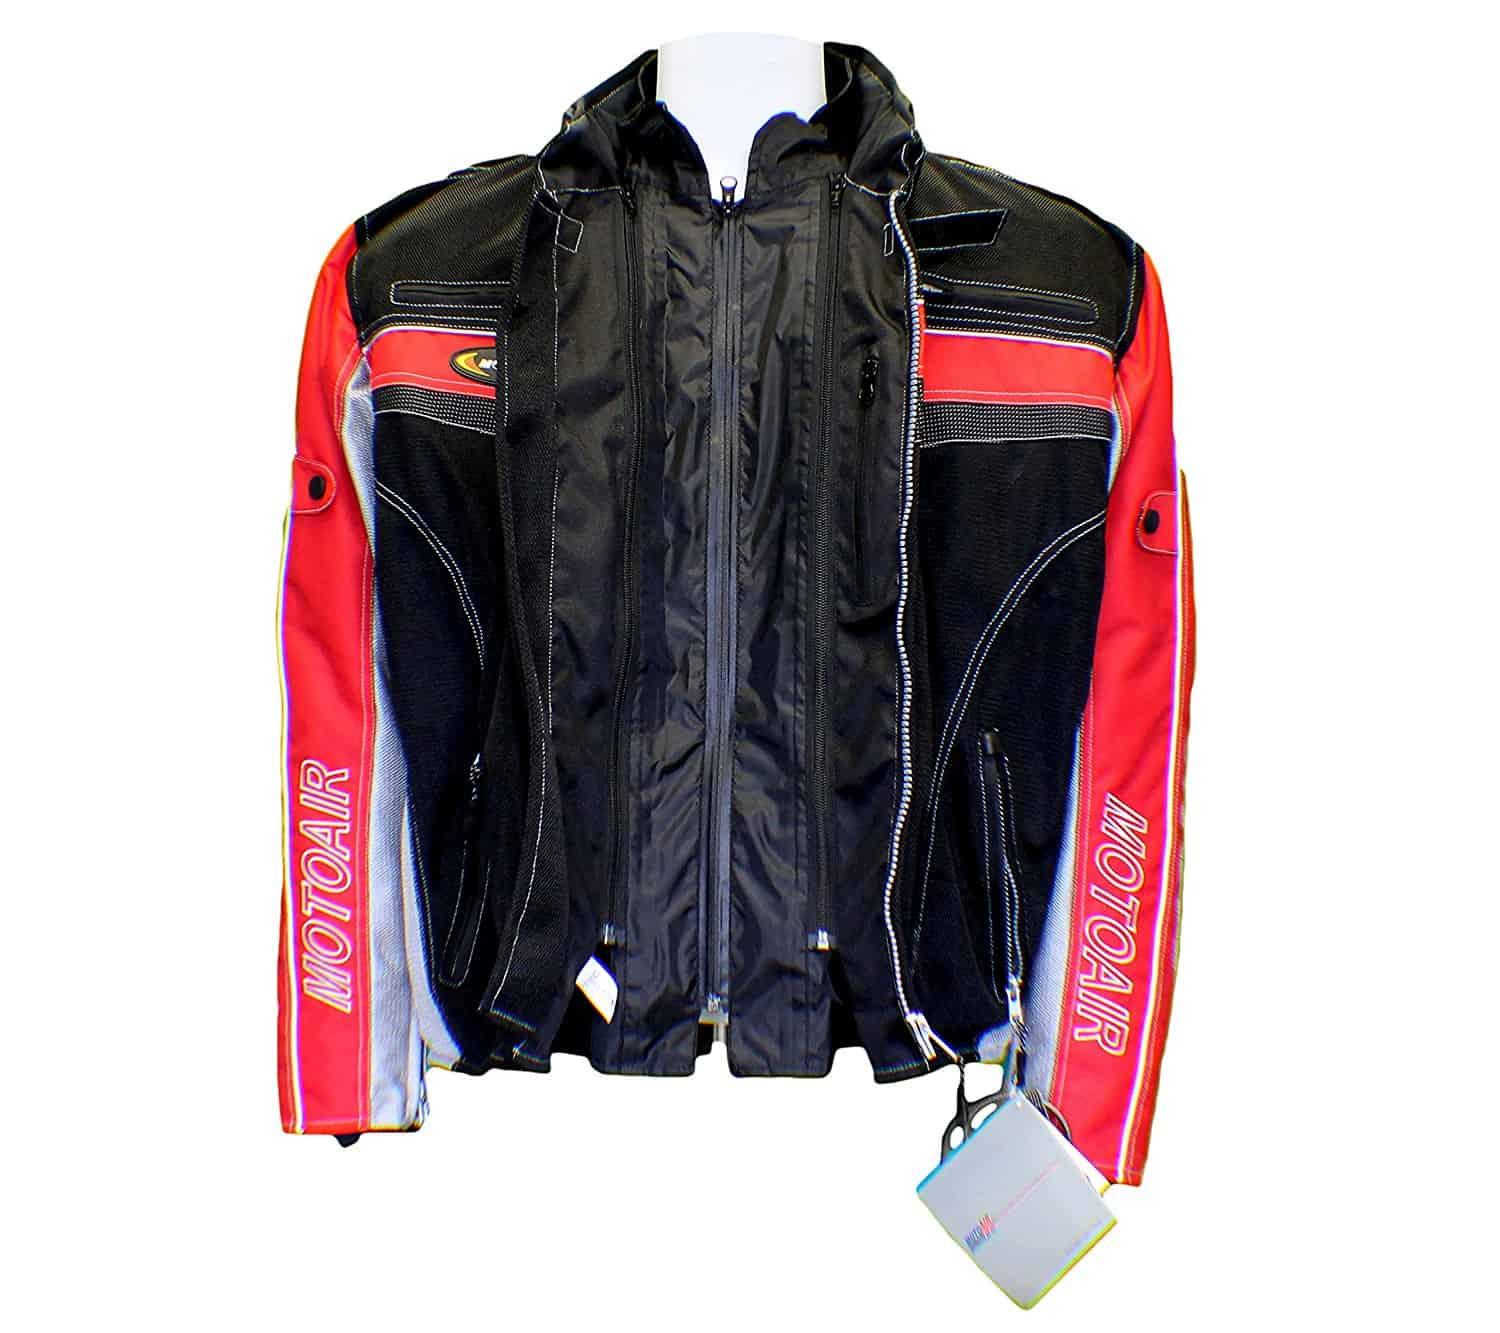 MotoAir M-600 Motorcycle Airbag Jacket